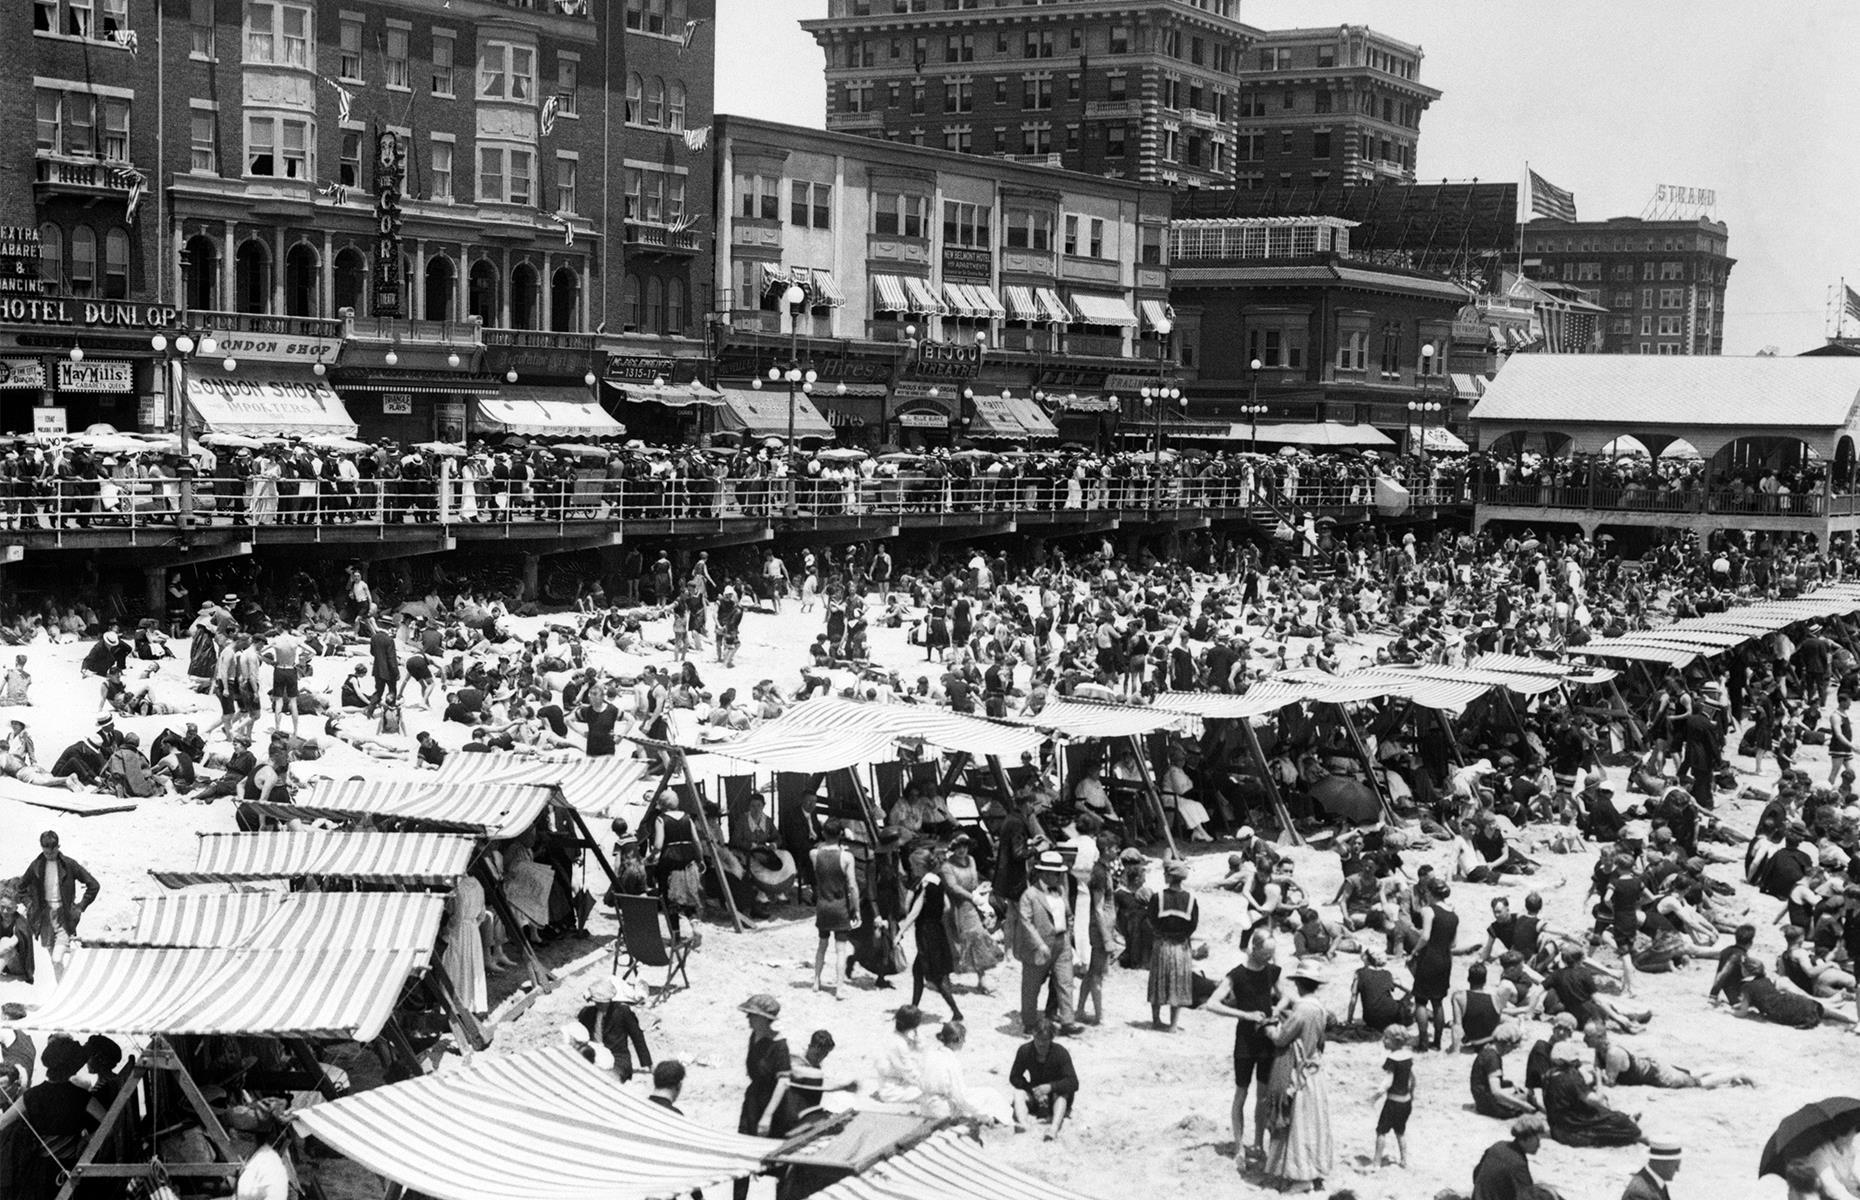 Slide 26 of 51: Atlantic City Boardwalk has been a popular attraction ever since it was constructed in the 1870s, as well as attracting more people to Atlantic City beach, pictured here filled with sun-seekers in the Roaring Twenties. It's thought to be the first boardwalk of its kind in the United States, and has been lined with luxurious hotels, eclectic stores and restaurants since its earliest beginnings. Check out more historic boardwalks and piers here.